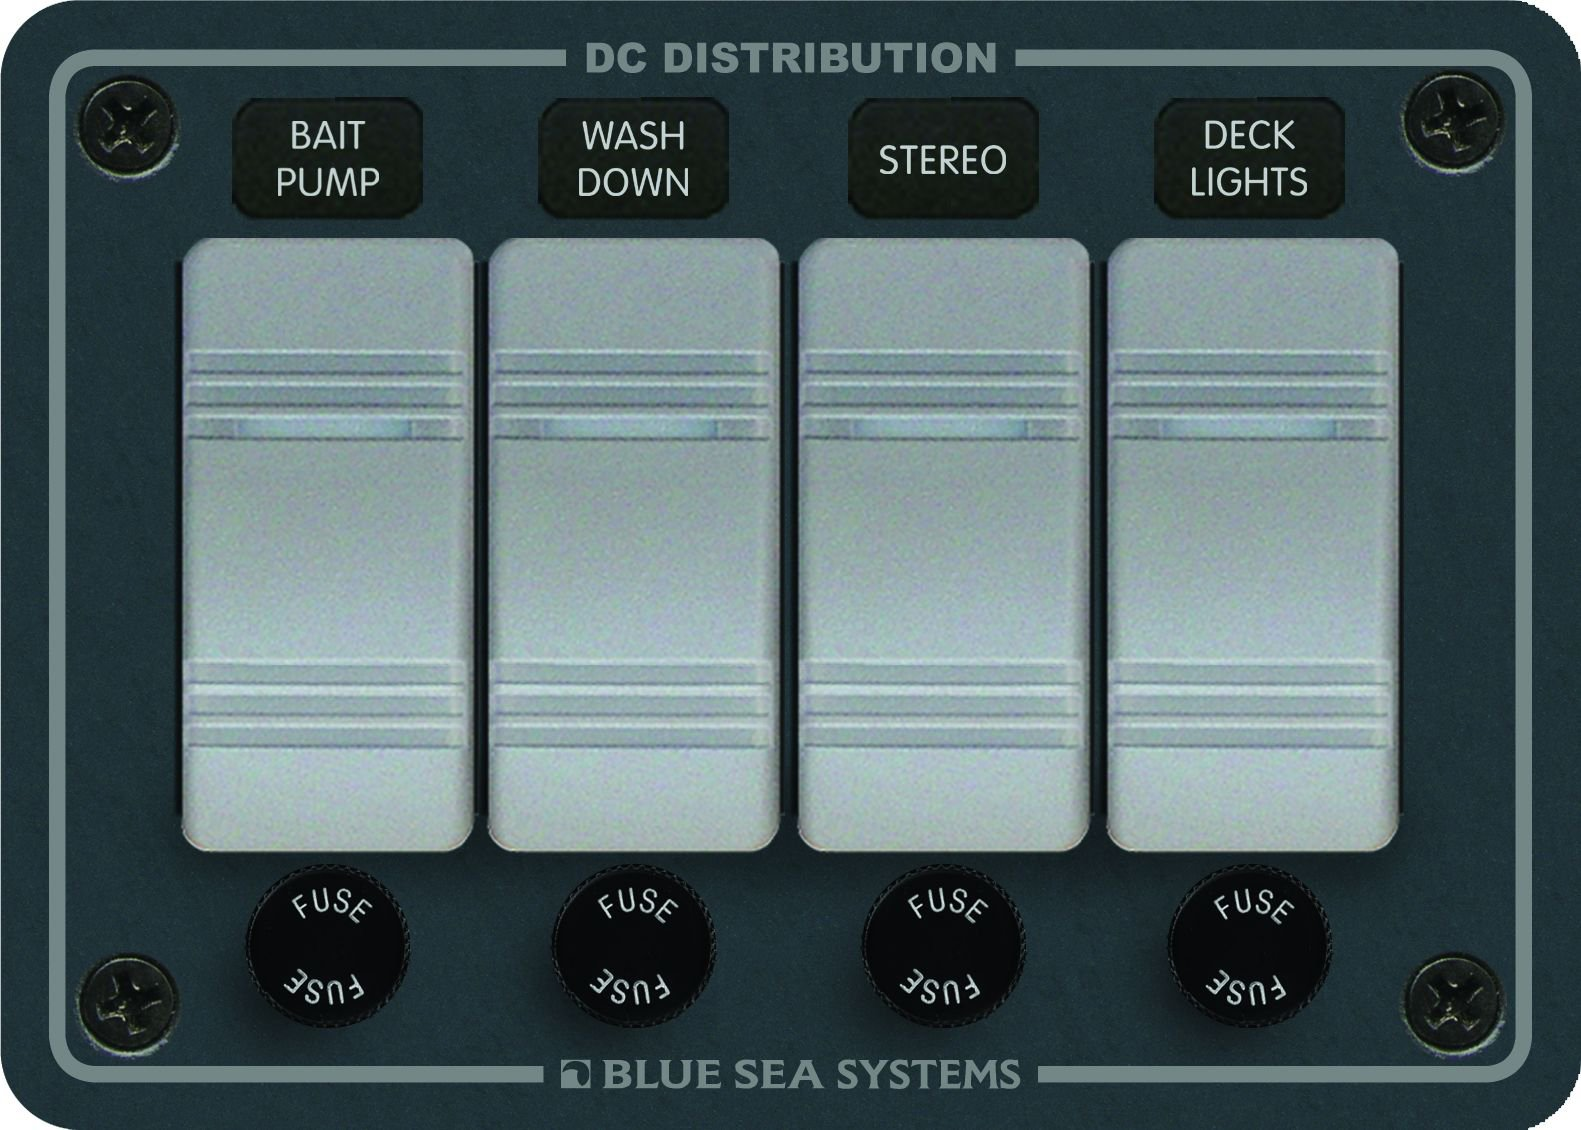 Blue Sea Systems Contura Water Resistant 12V DC Panel - 4 Position